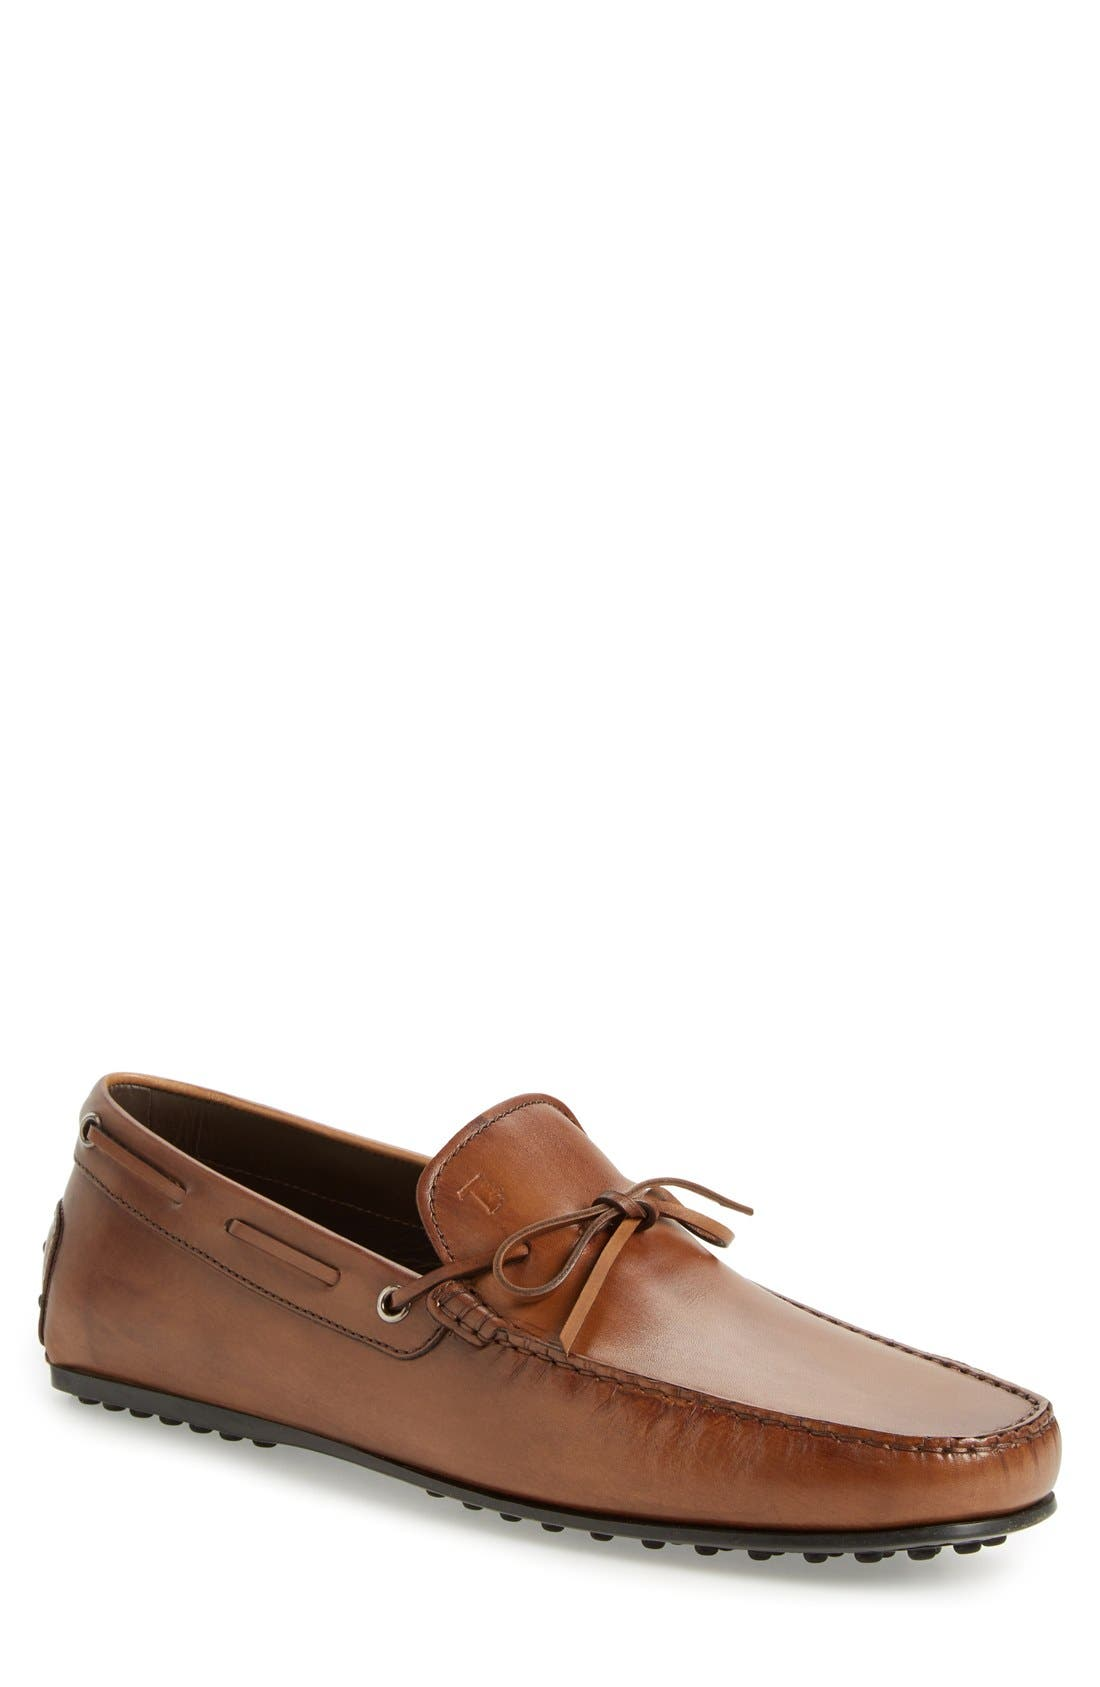 Alternate Image 1 Selected - Tod's 'City Gommini' Tie Front Driving Moccasin (Men)